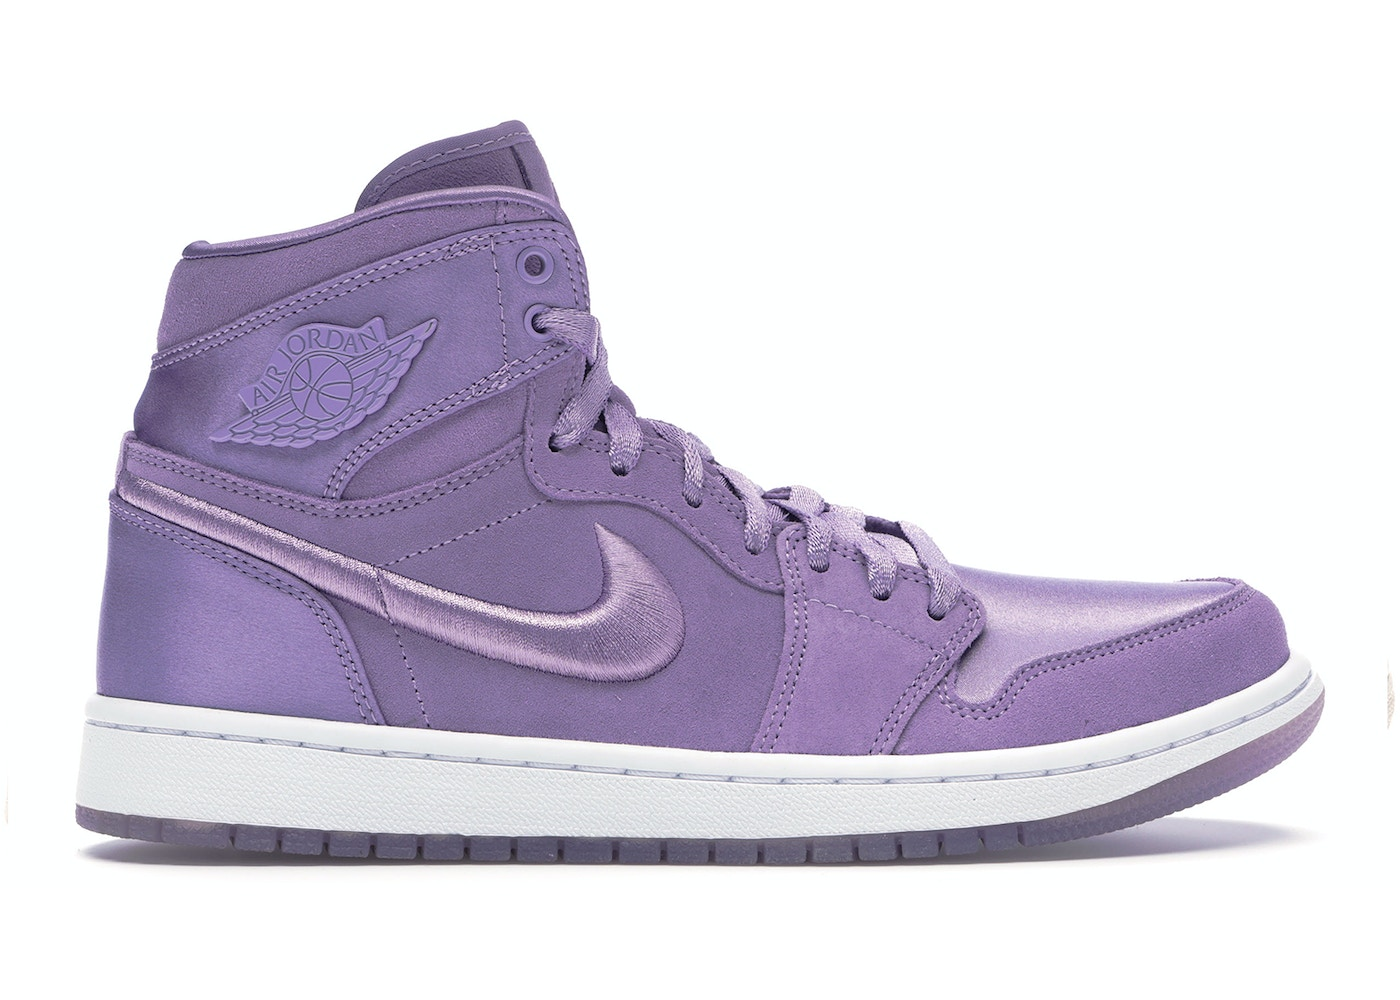 new arrivals aca47 8e918 Jordan 1 Retro High Season of Her Orchid Mist (W) - AO1847-550